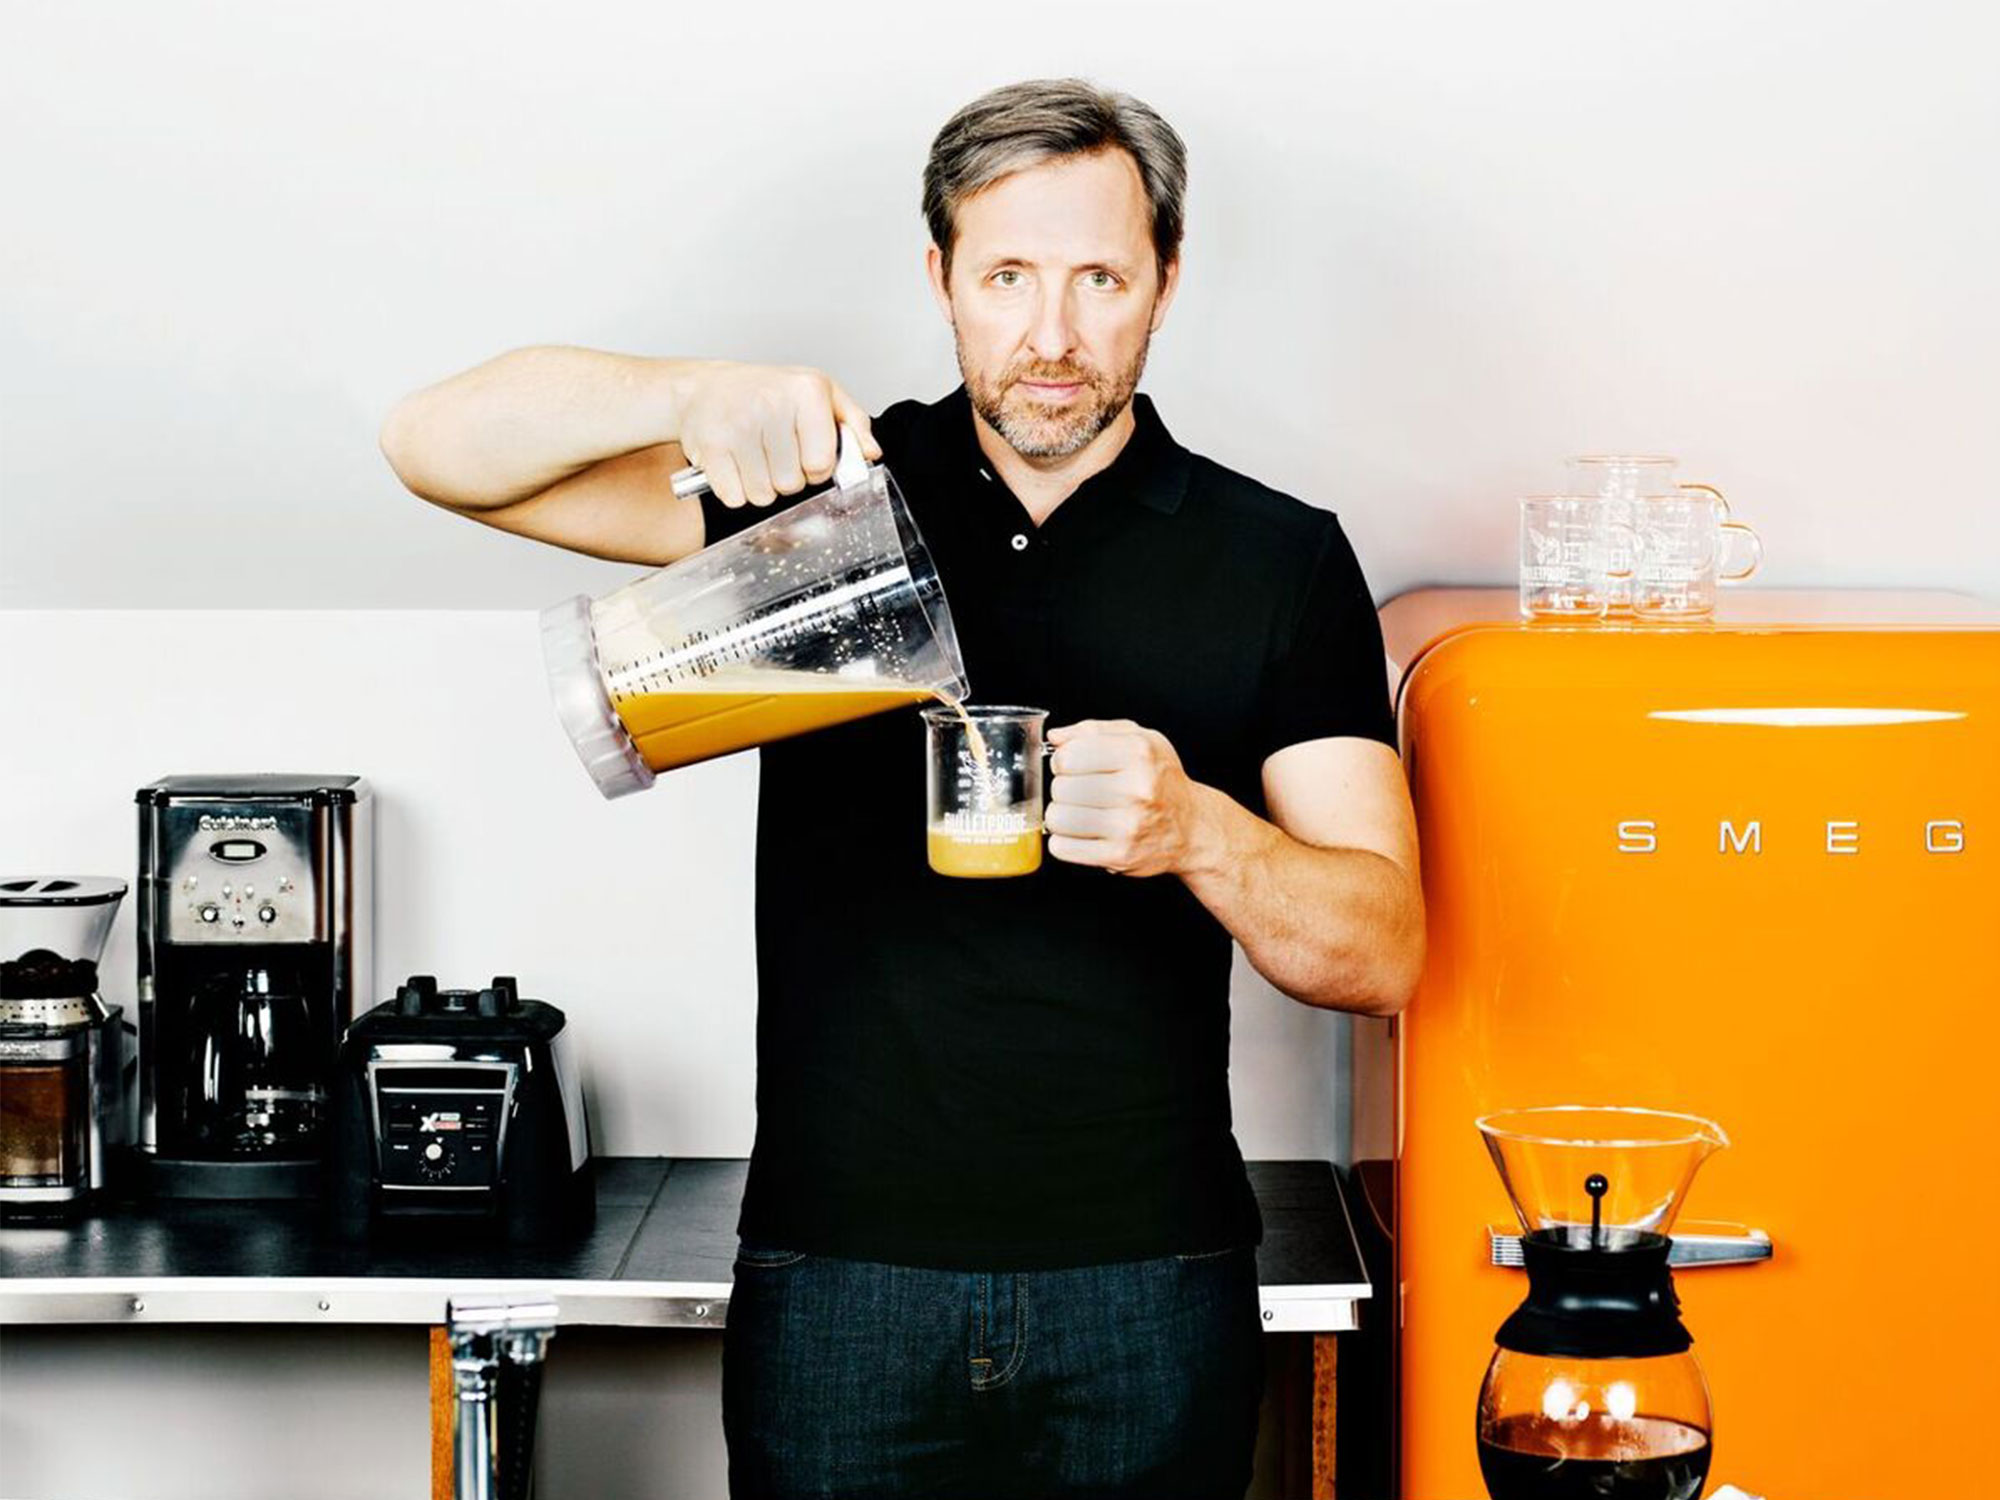 Guess What the Founder of Bulletproof Coffee Has for Breakfast Every Day